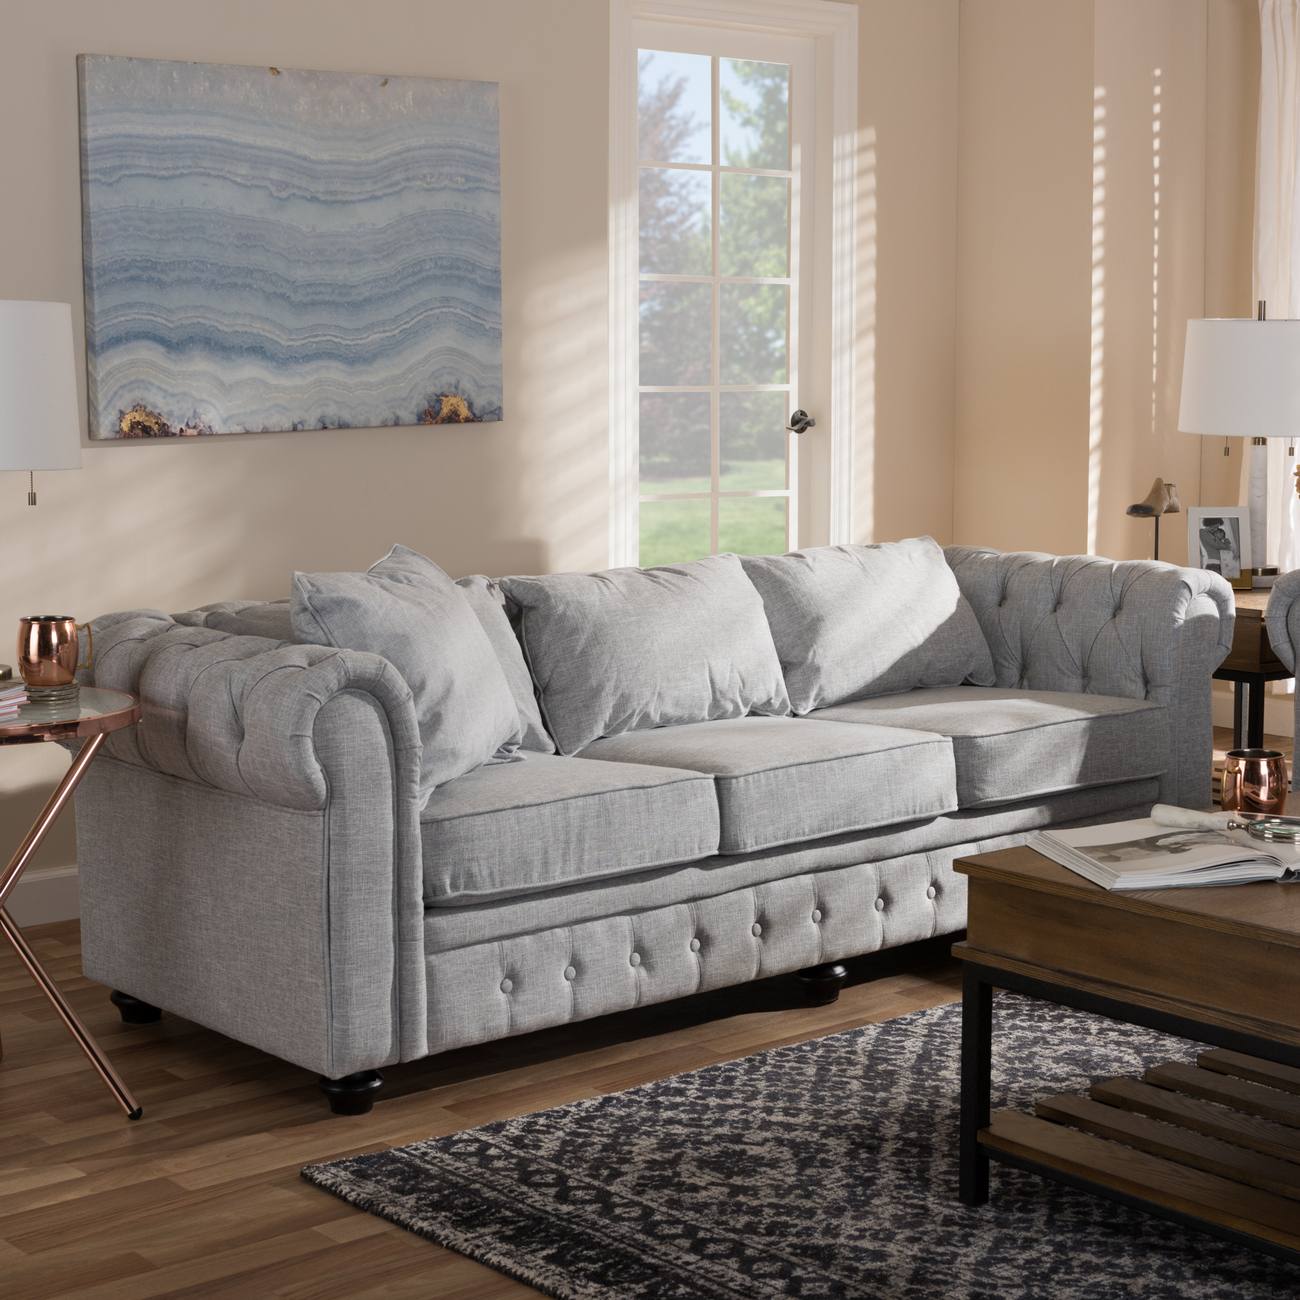 Wholesale Interiors Modern Grey Linen Tufted Scroll Arm Chesterfield Sofa